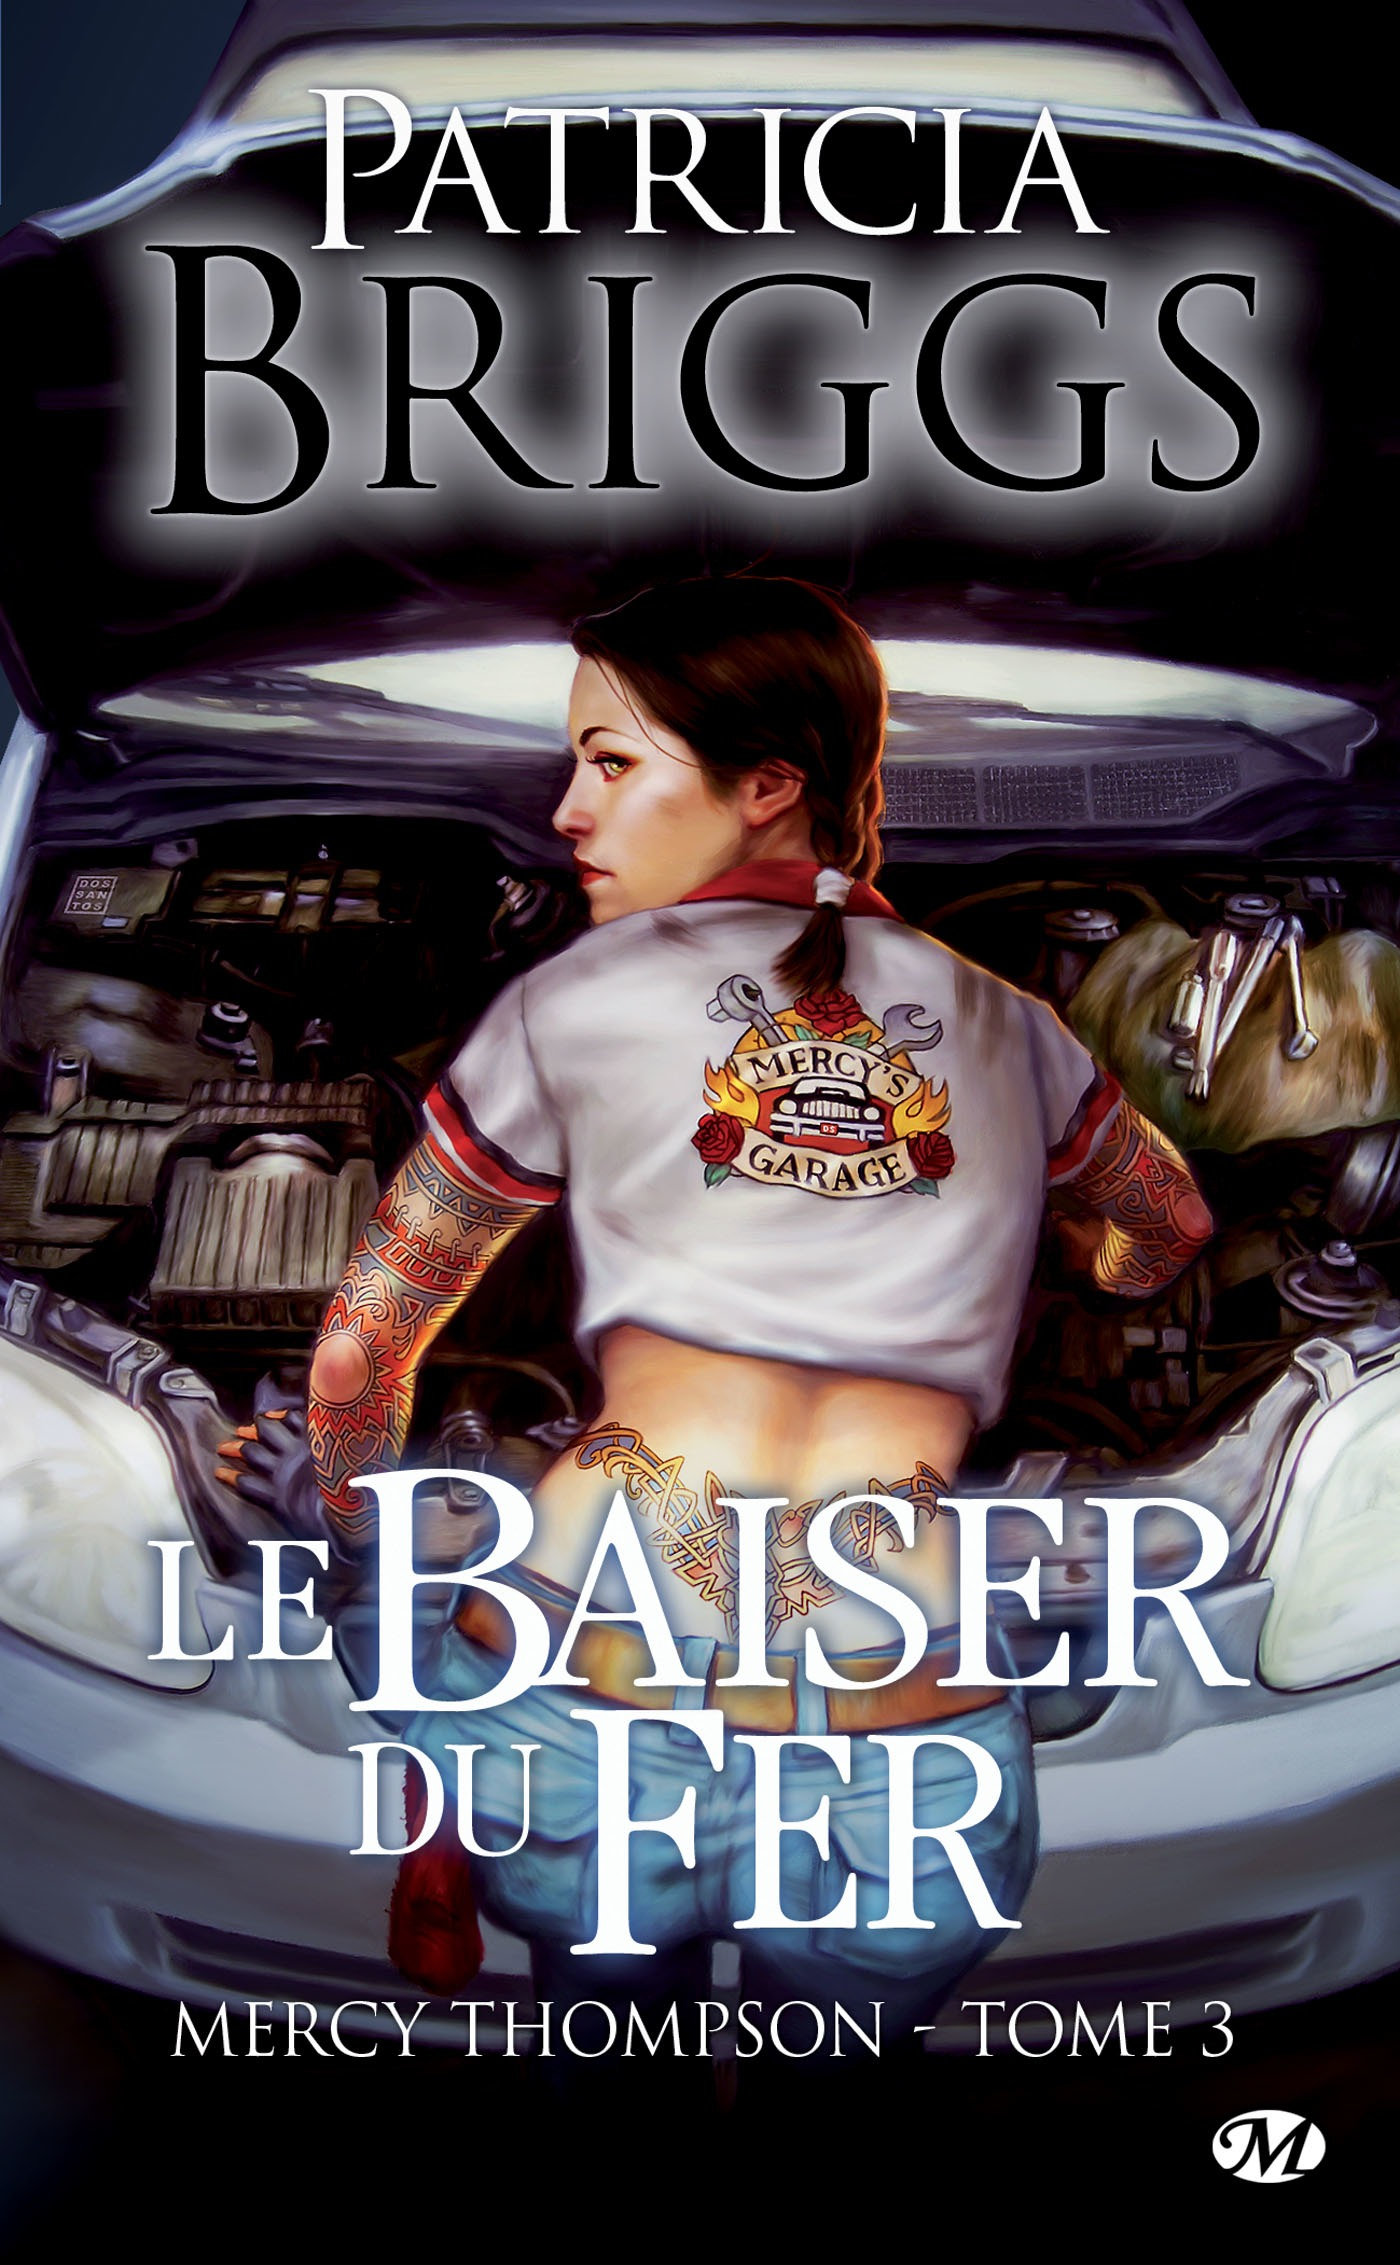 Le Baiser du fer, MERCY THOMPSON, T3